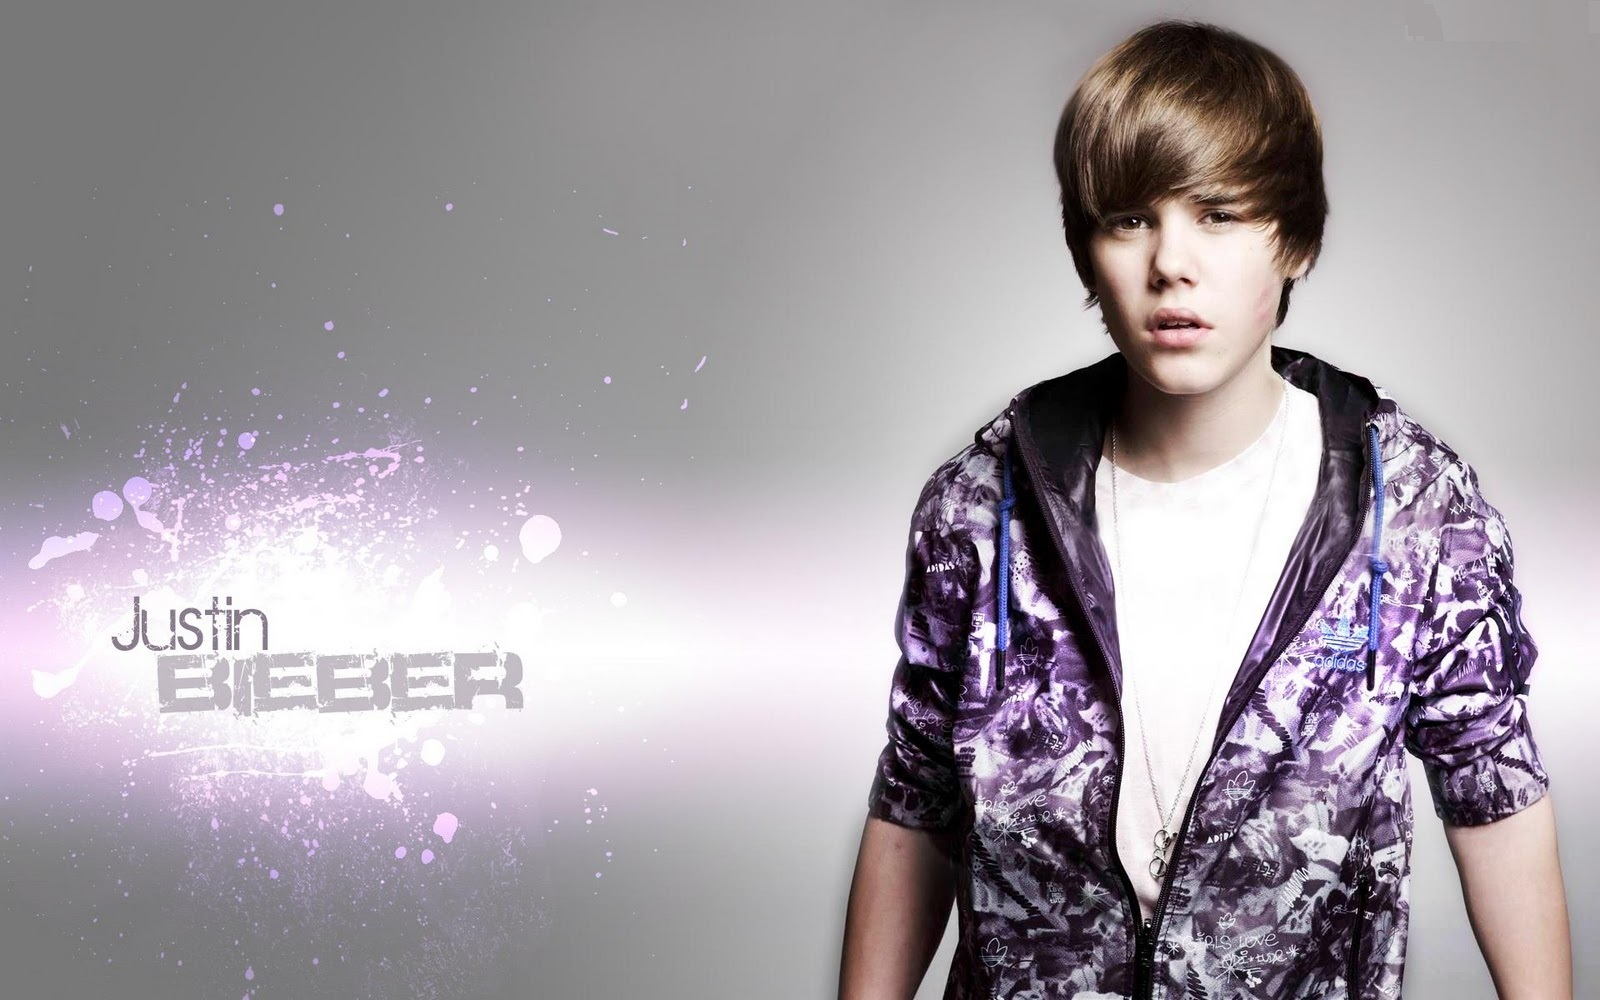 justin bieber new hd wallpapers 20122013 all about hd